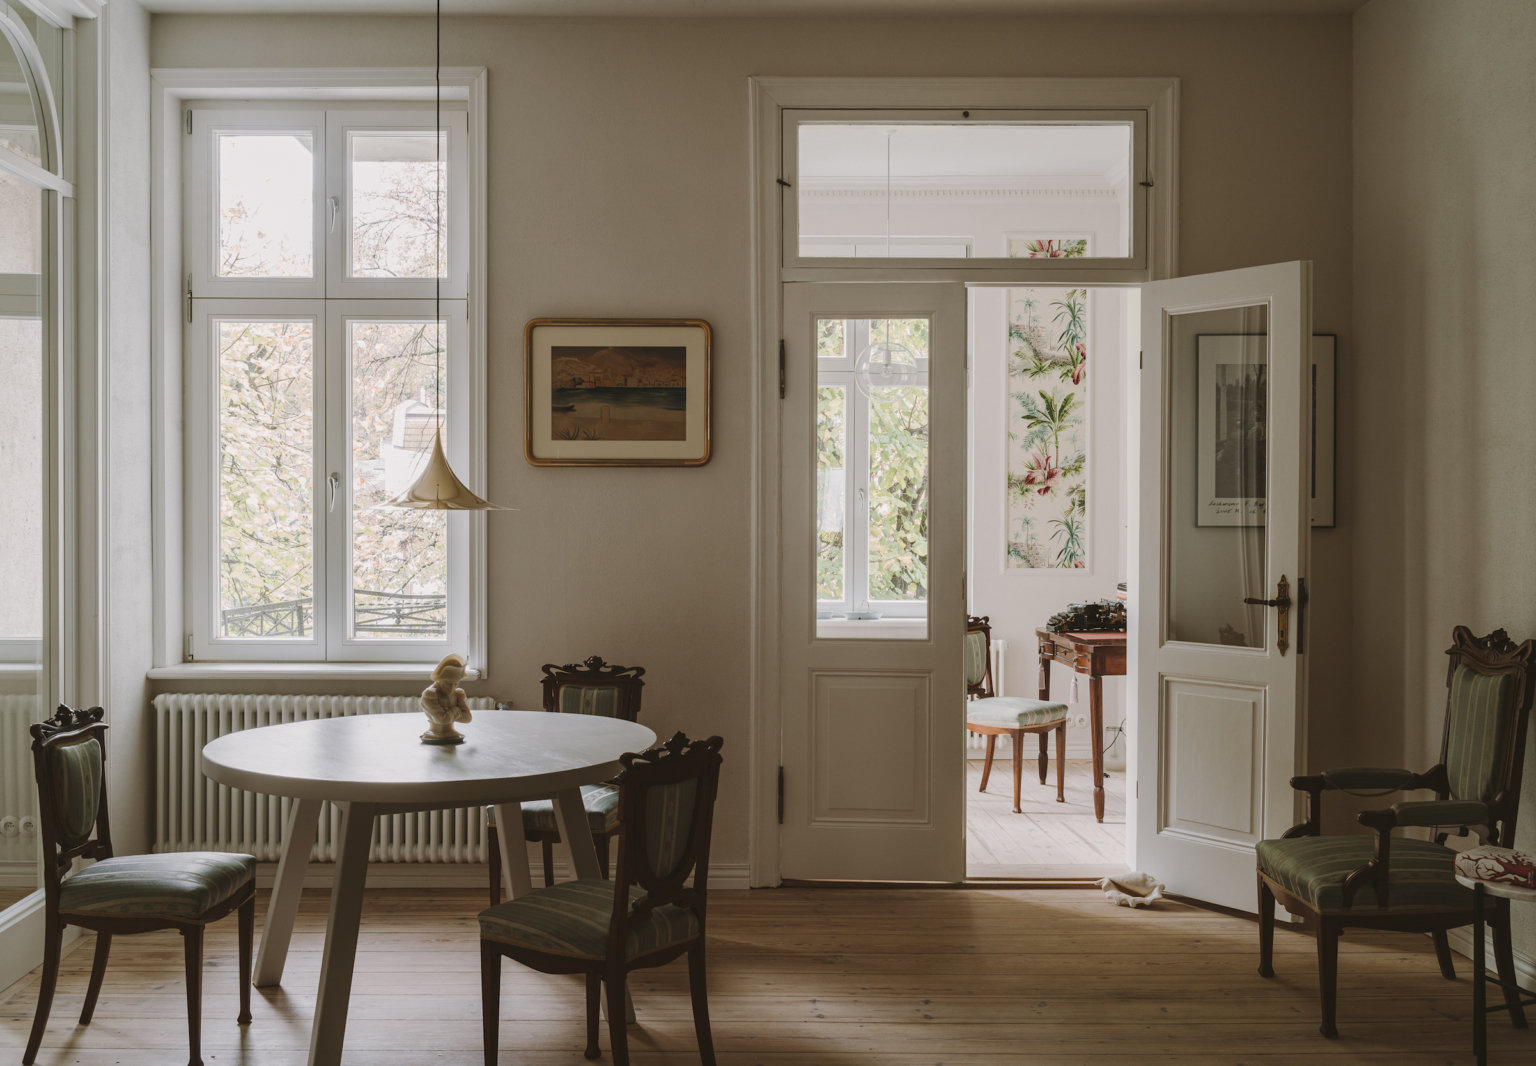 Old World Meets Modern: A Casual but Elegant Pre-War Flat on the Baltic Coast